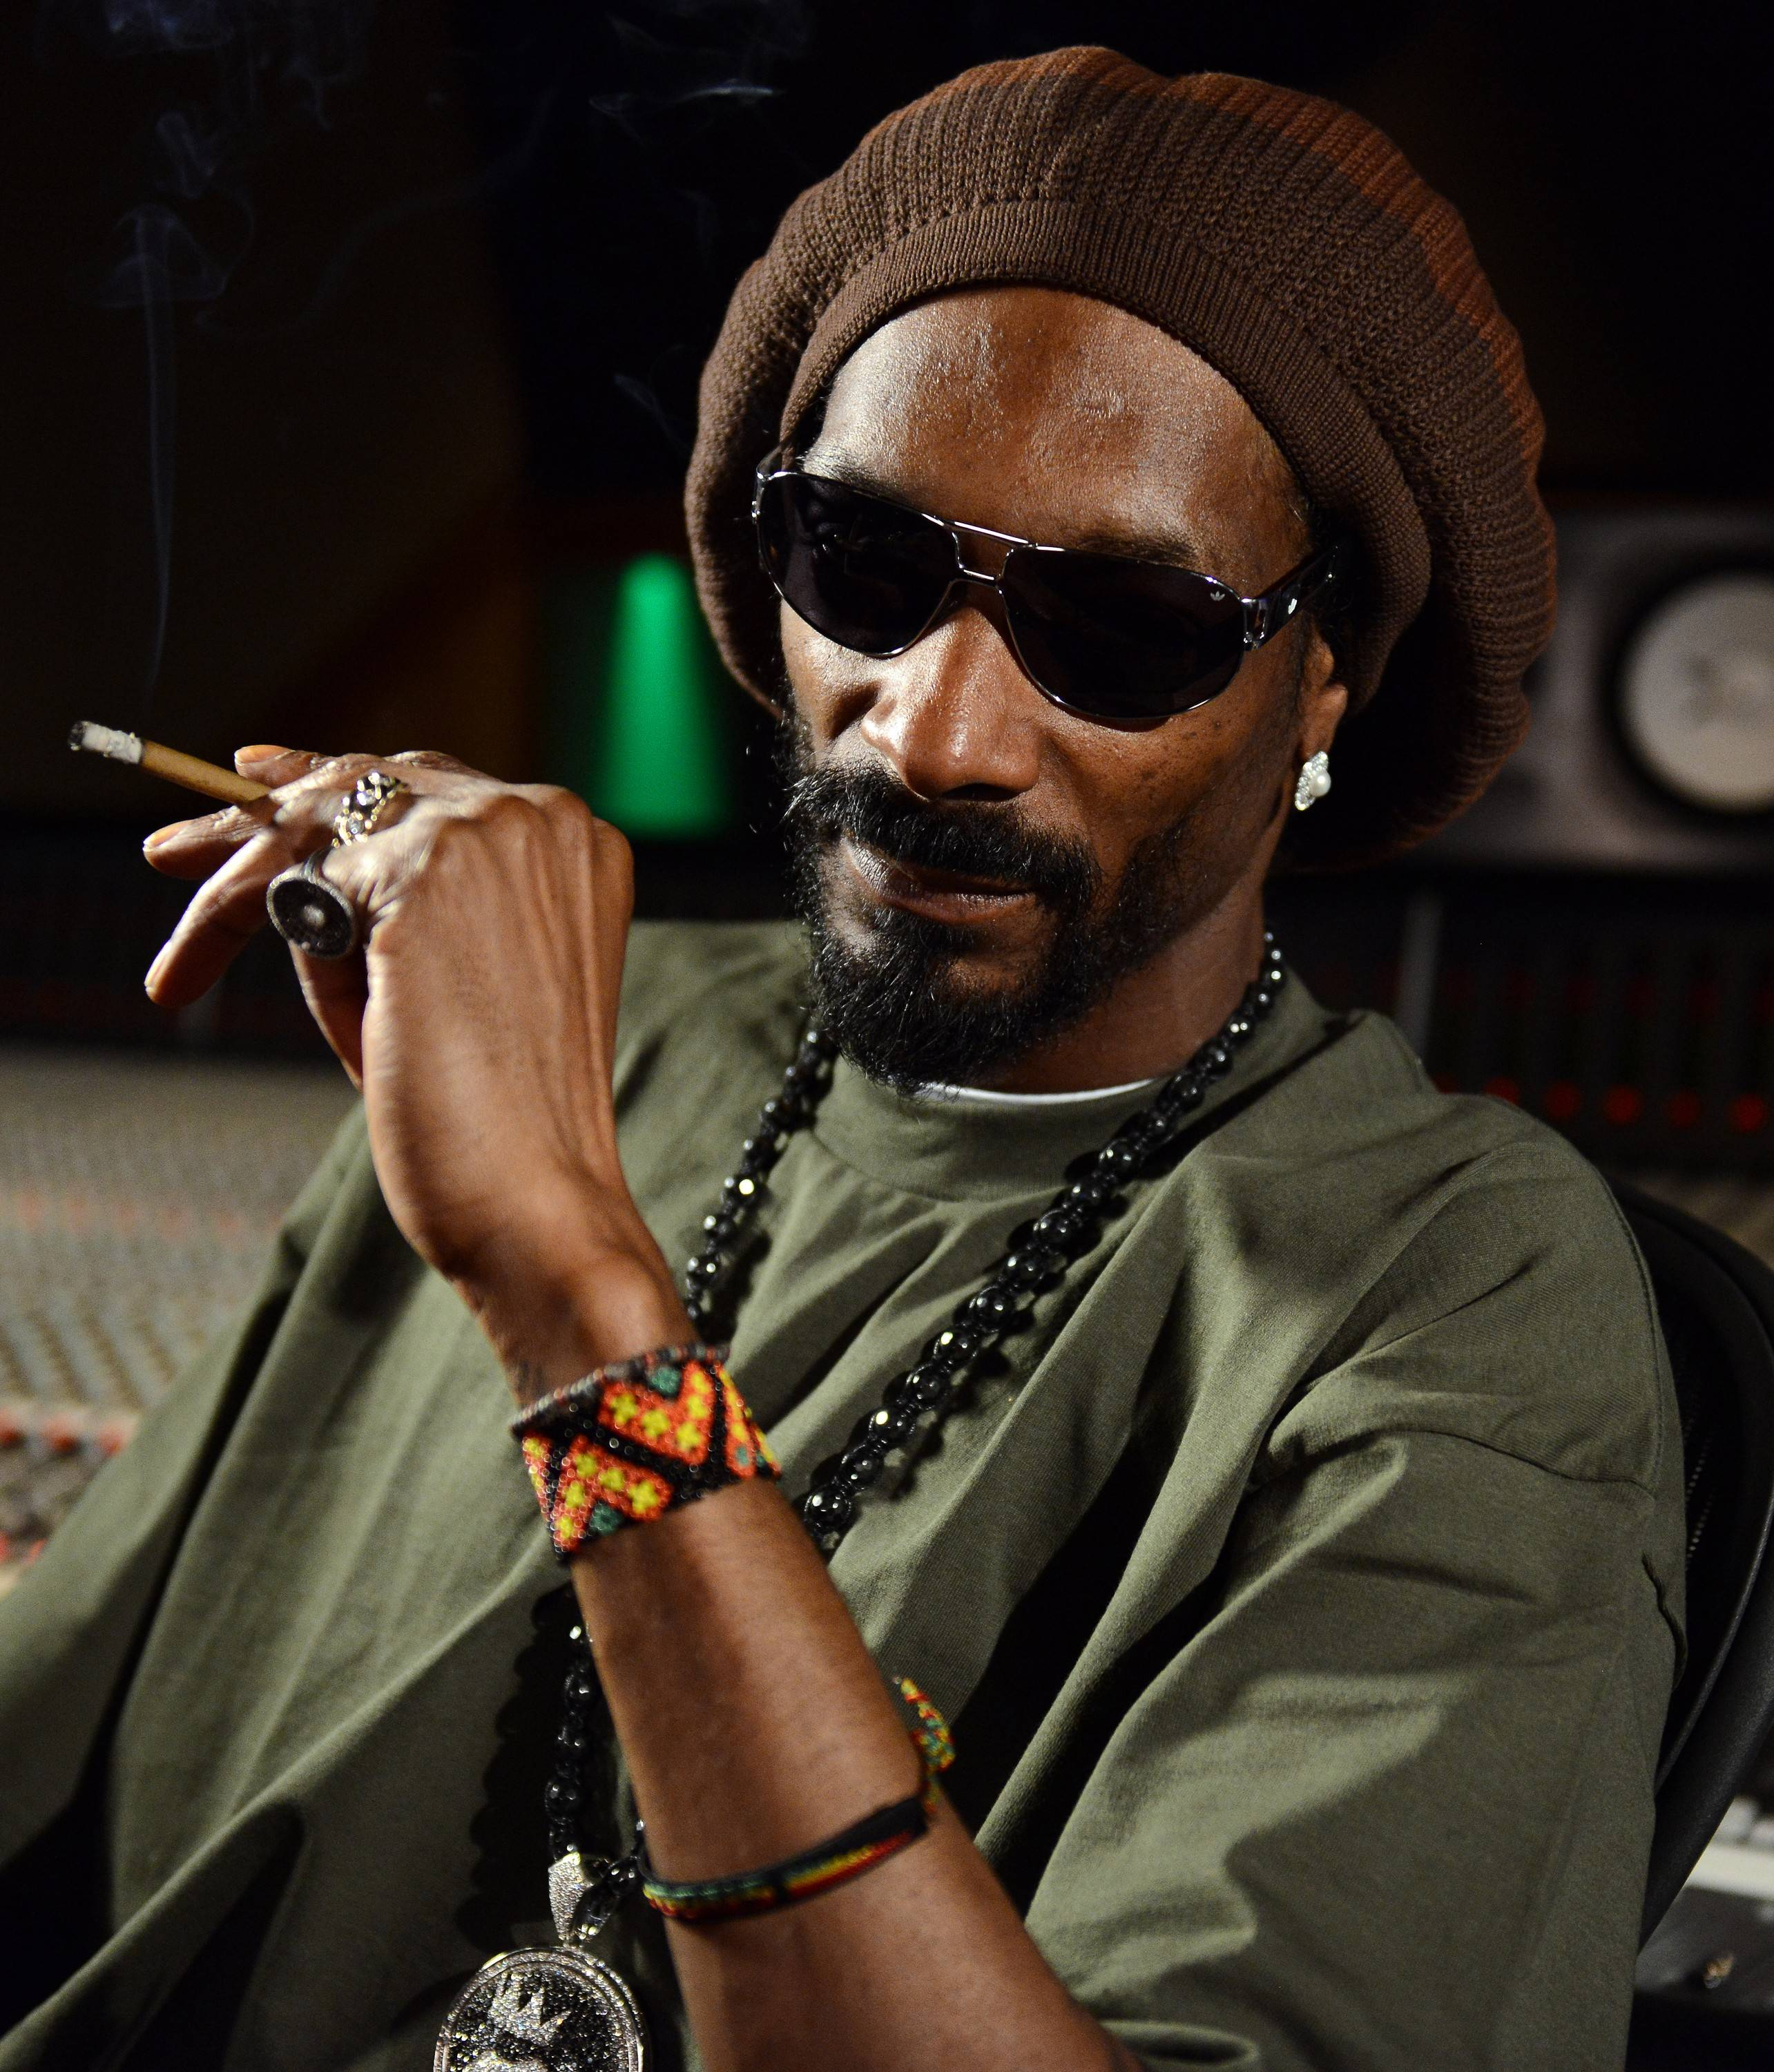 Rapper Snoop Dogg says he'll do a concert in Alaska if voters in November approve an initiative legalizing recreational use of marijuana.